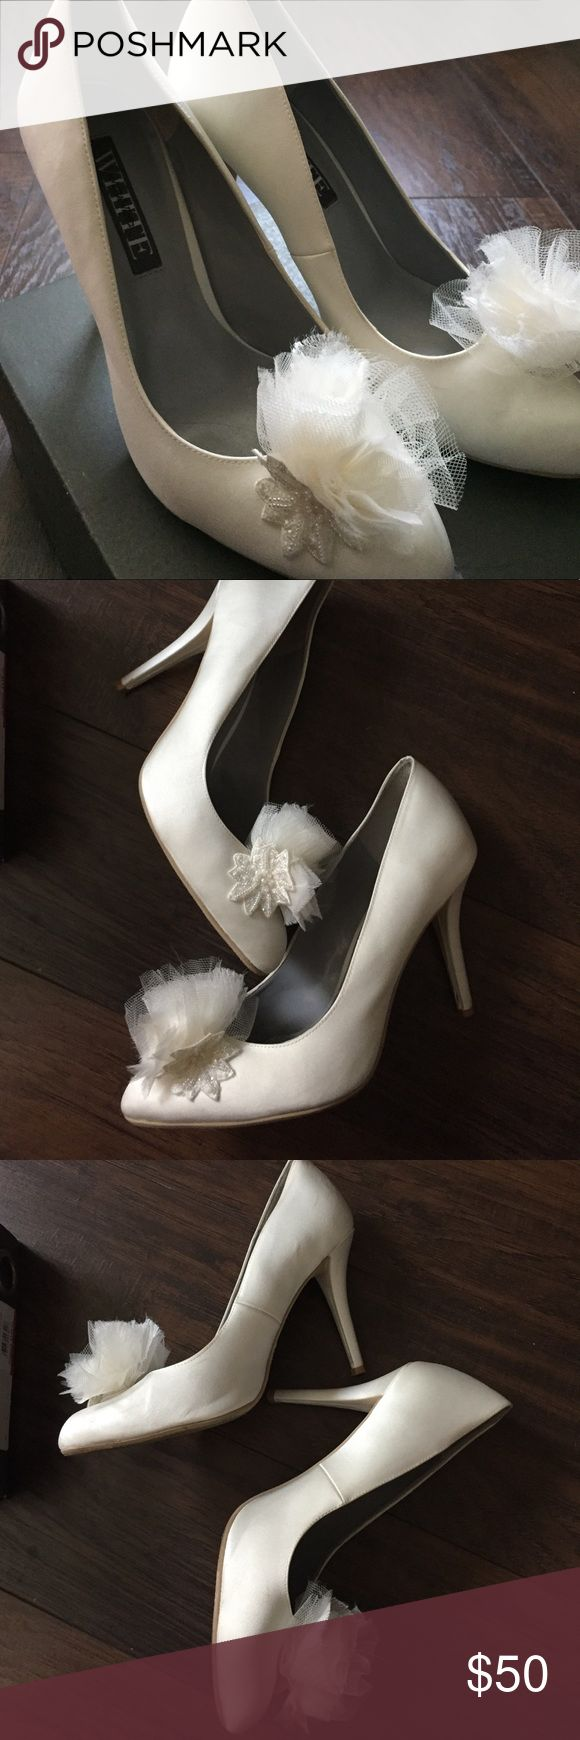 "Vera Wang Ivory Heels White by Vera Wang Collection. 4"" Heels in ivory satin very reminiscent of Carrie Bradshaw. Slight smudges (pictures and priced accordingly). Wore them on my wedding for a few hours. Hate to see them go but they're just sitting in my closet. Vera Wang Shoes Heels"